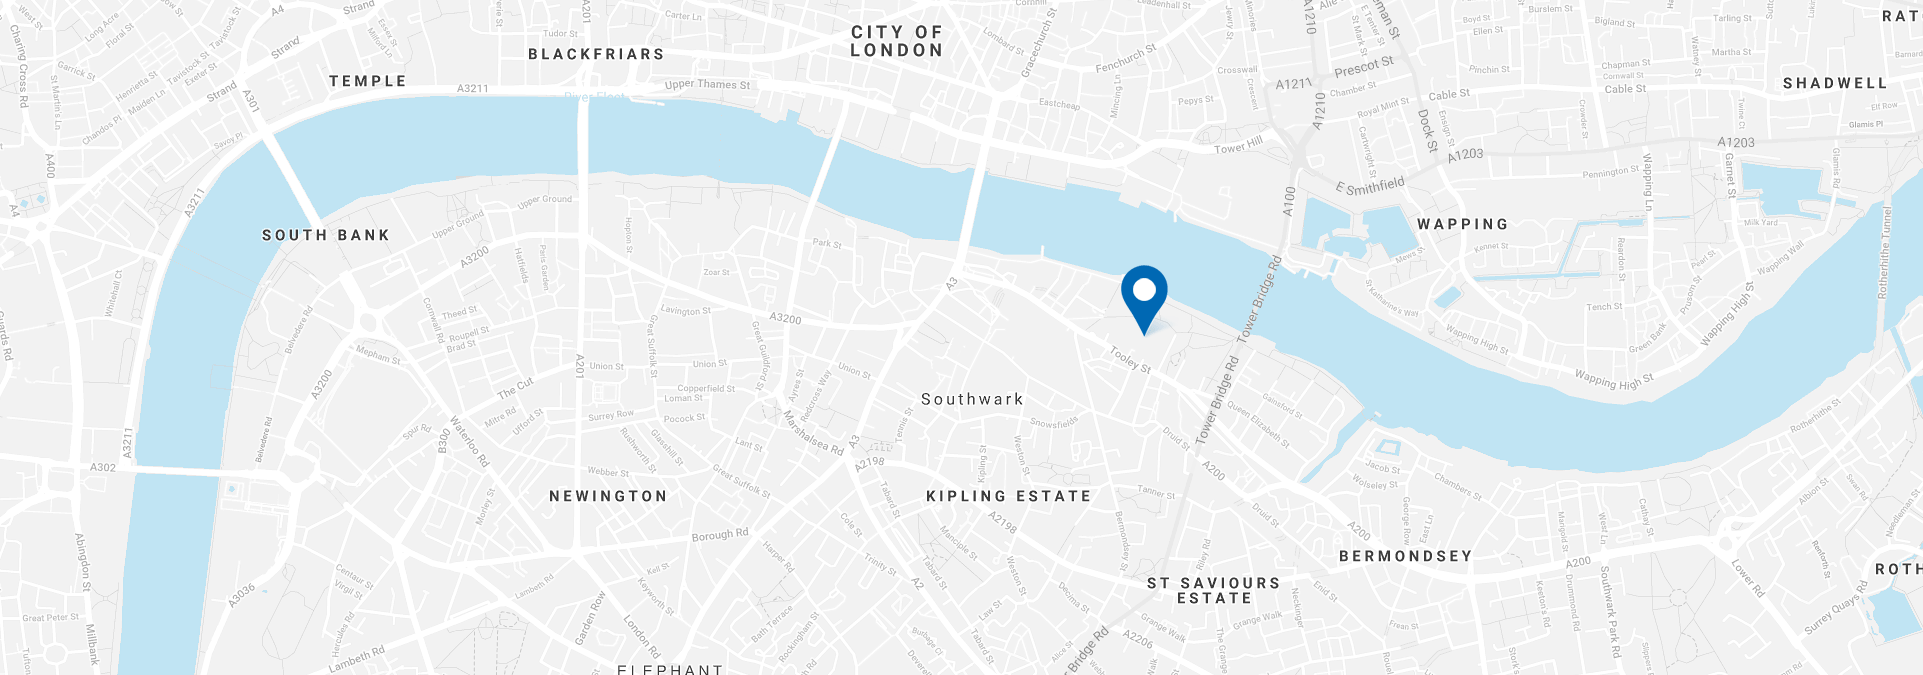 map-uk-london-full